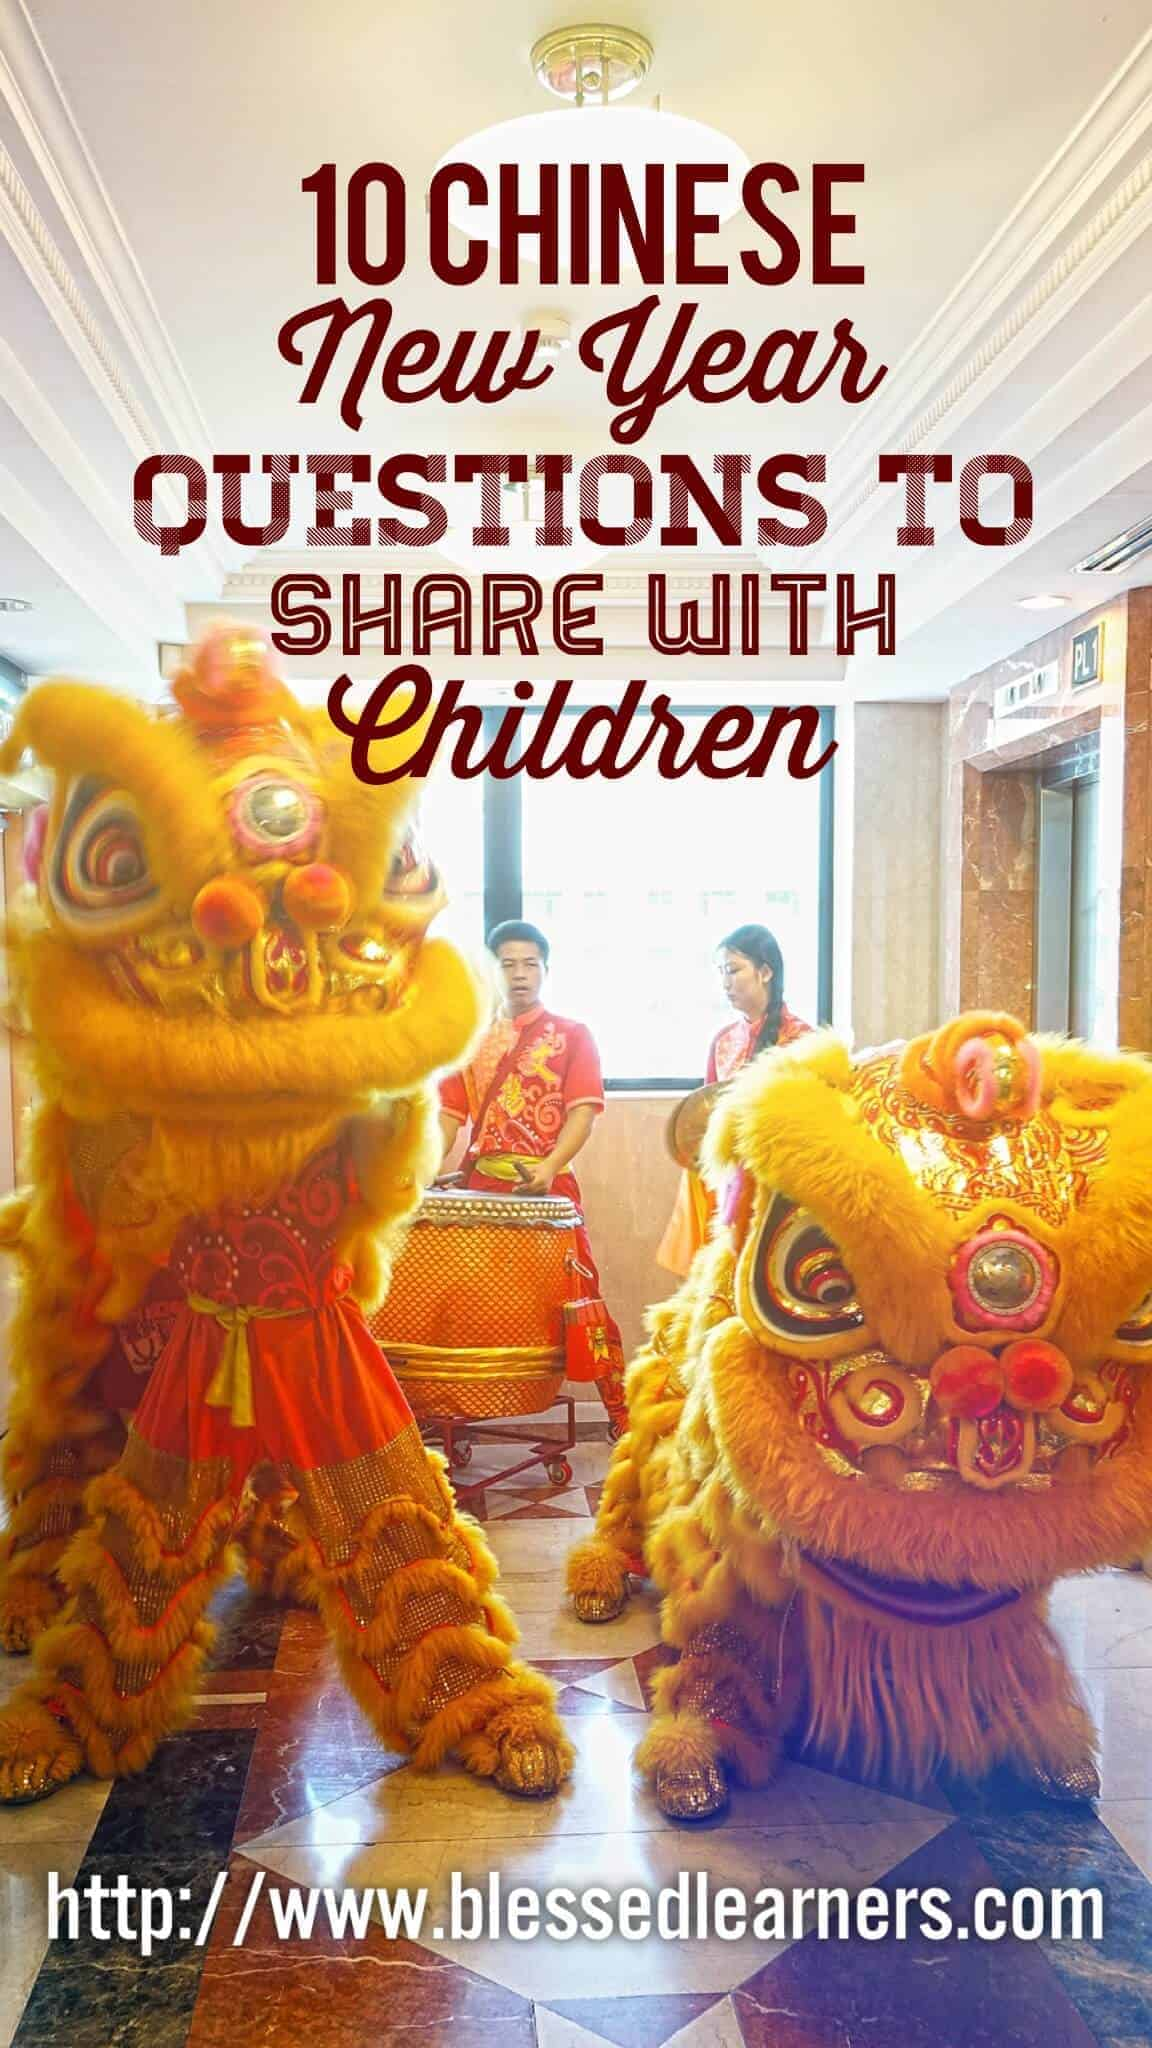 10 Chinese New Year Questions to Share with Children